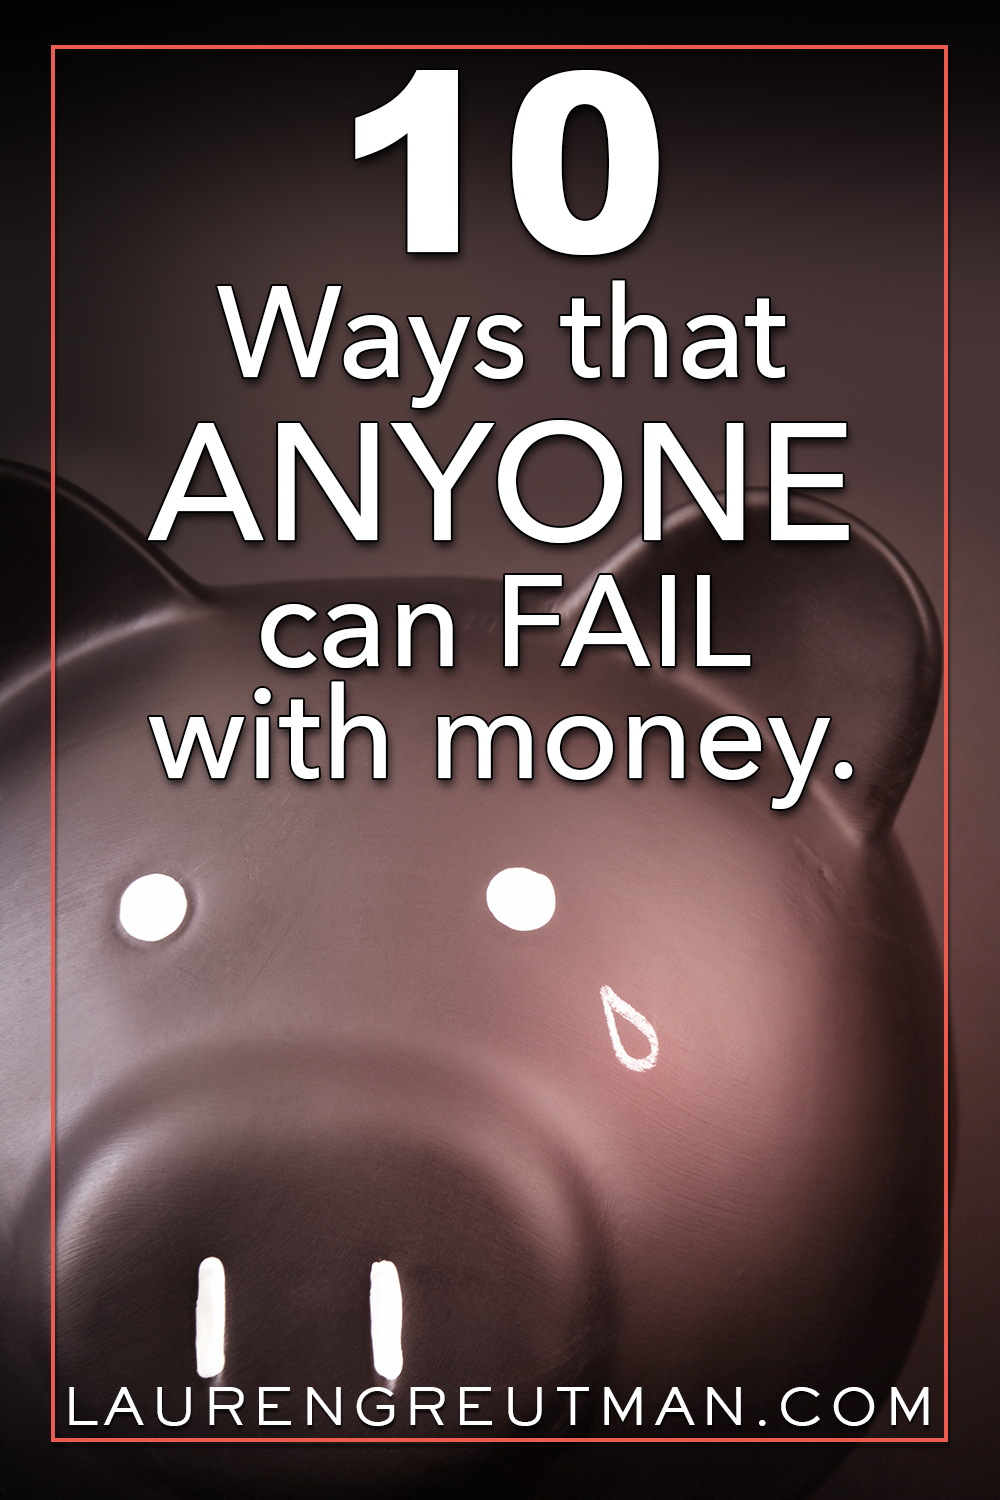 No matter how much or little you make, you could be guilty of Failing at Money in one of these 10 areas. Here are 10 ways ANYONE can Fail at money.